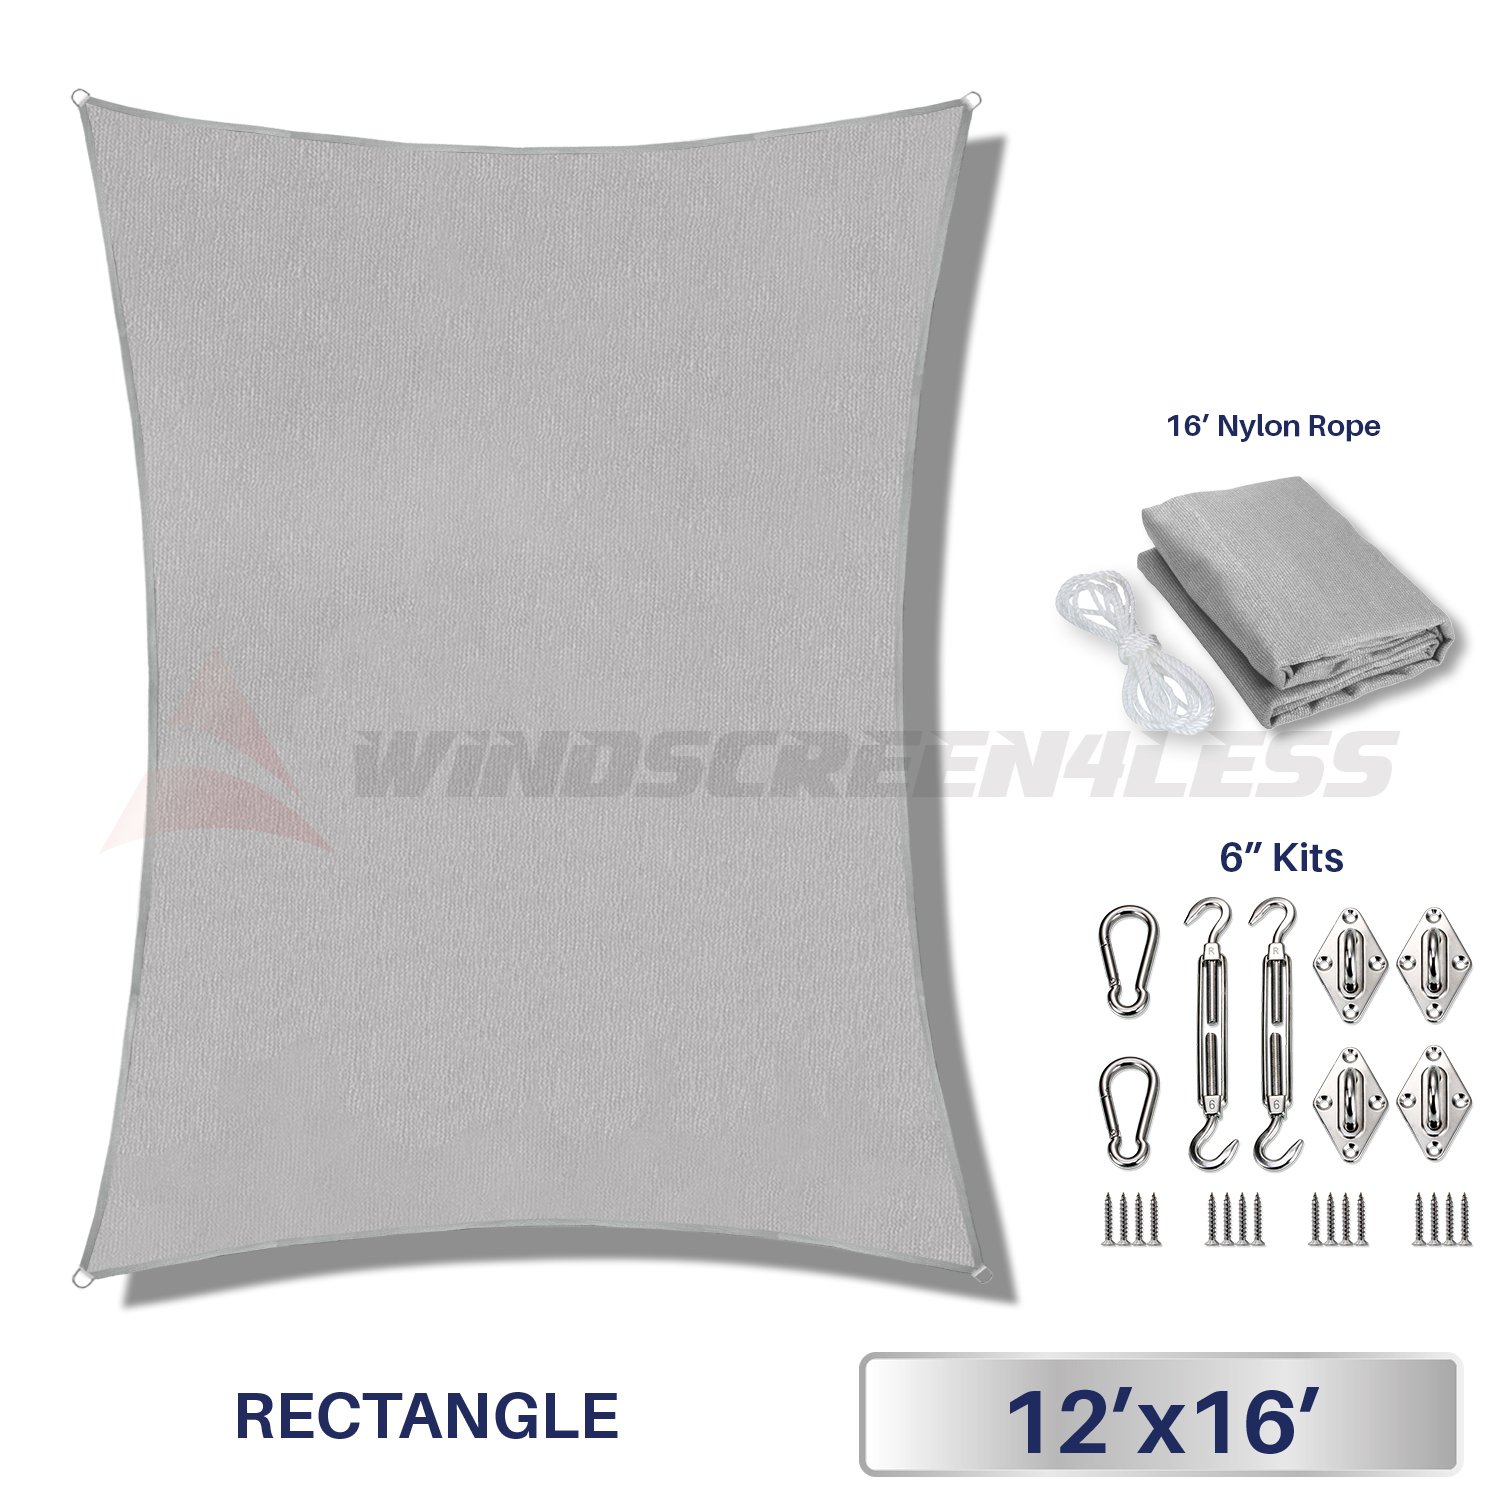 Windscreen4less 12' x 16' Rectangle Sun Shade Sail with 6 inch Hardware Kit - Light Grey Durable UV Shelter Canopy for Patio Outdoor Backyard - Custom Size Available